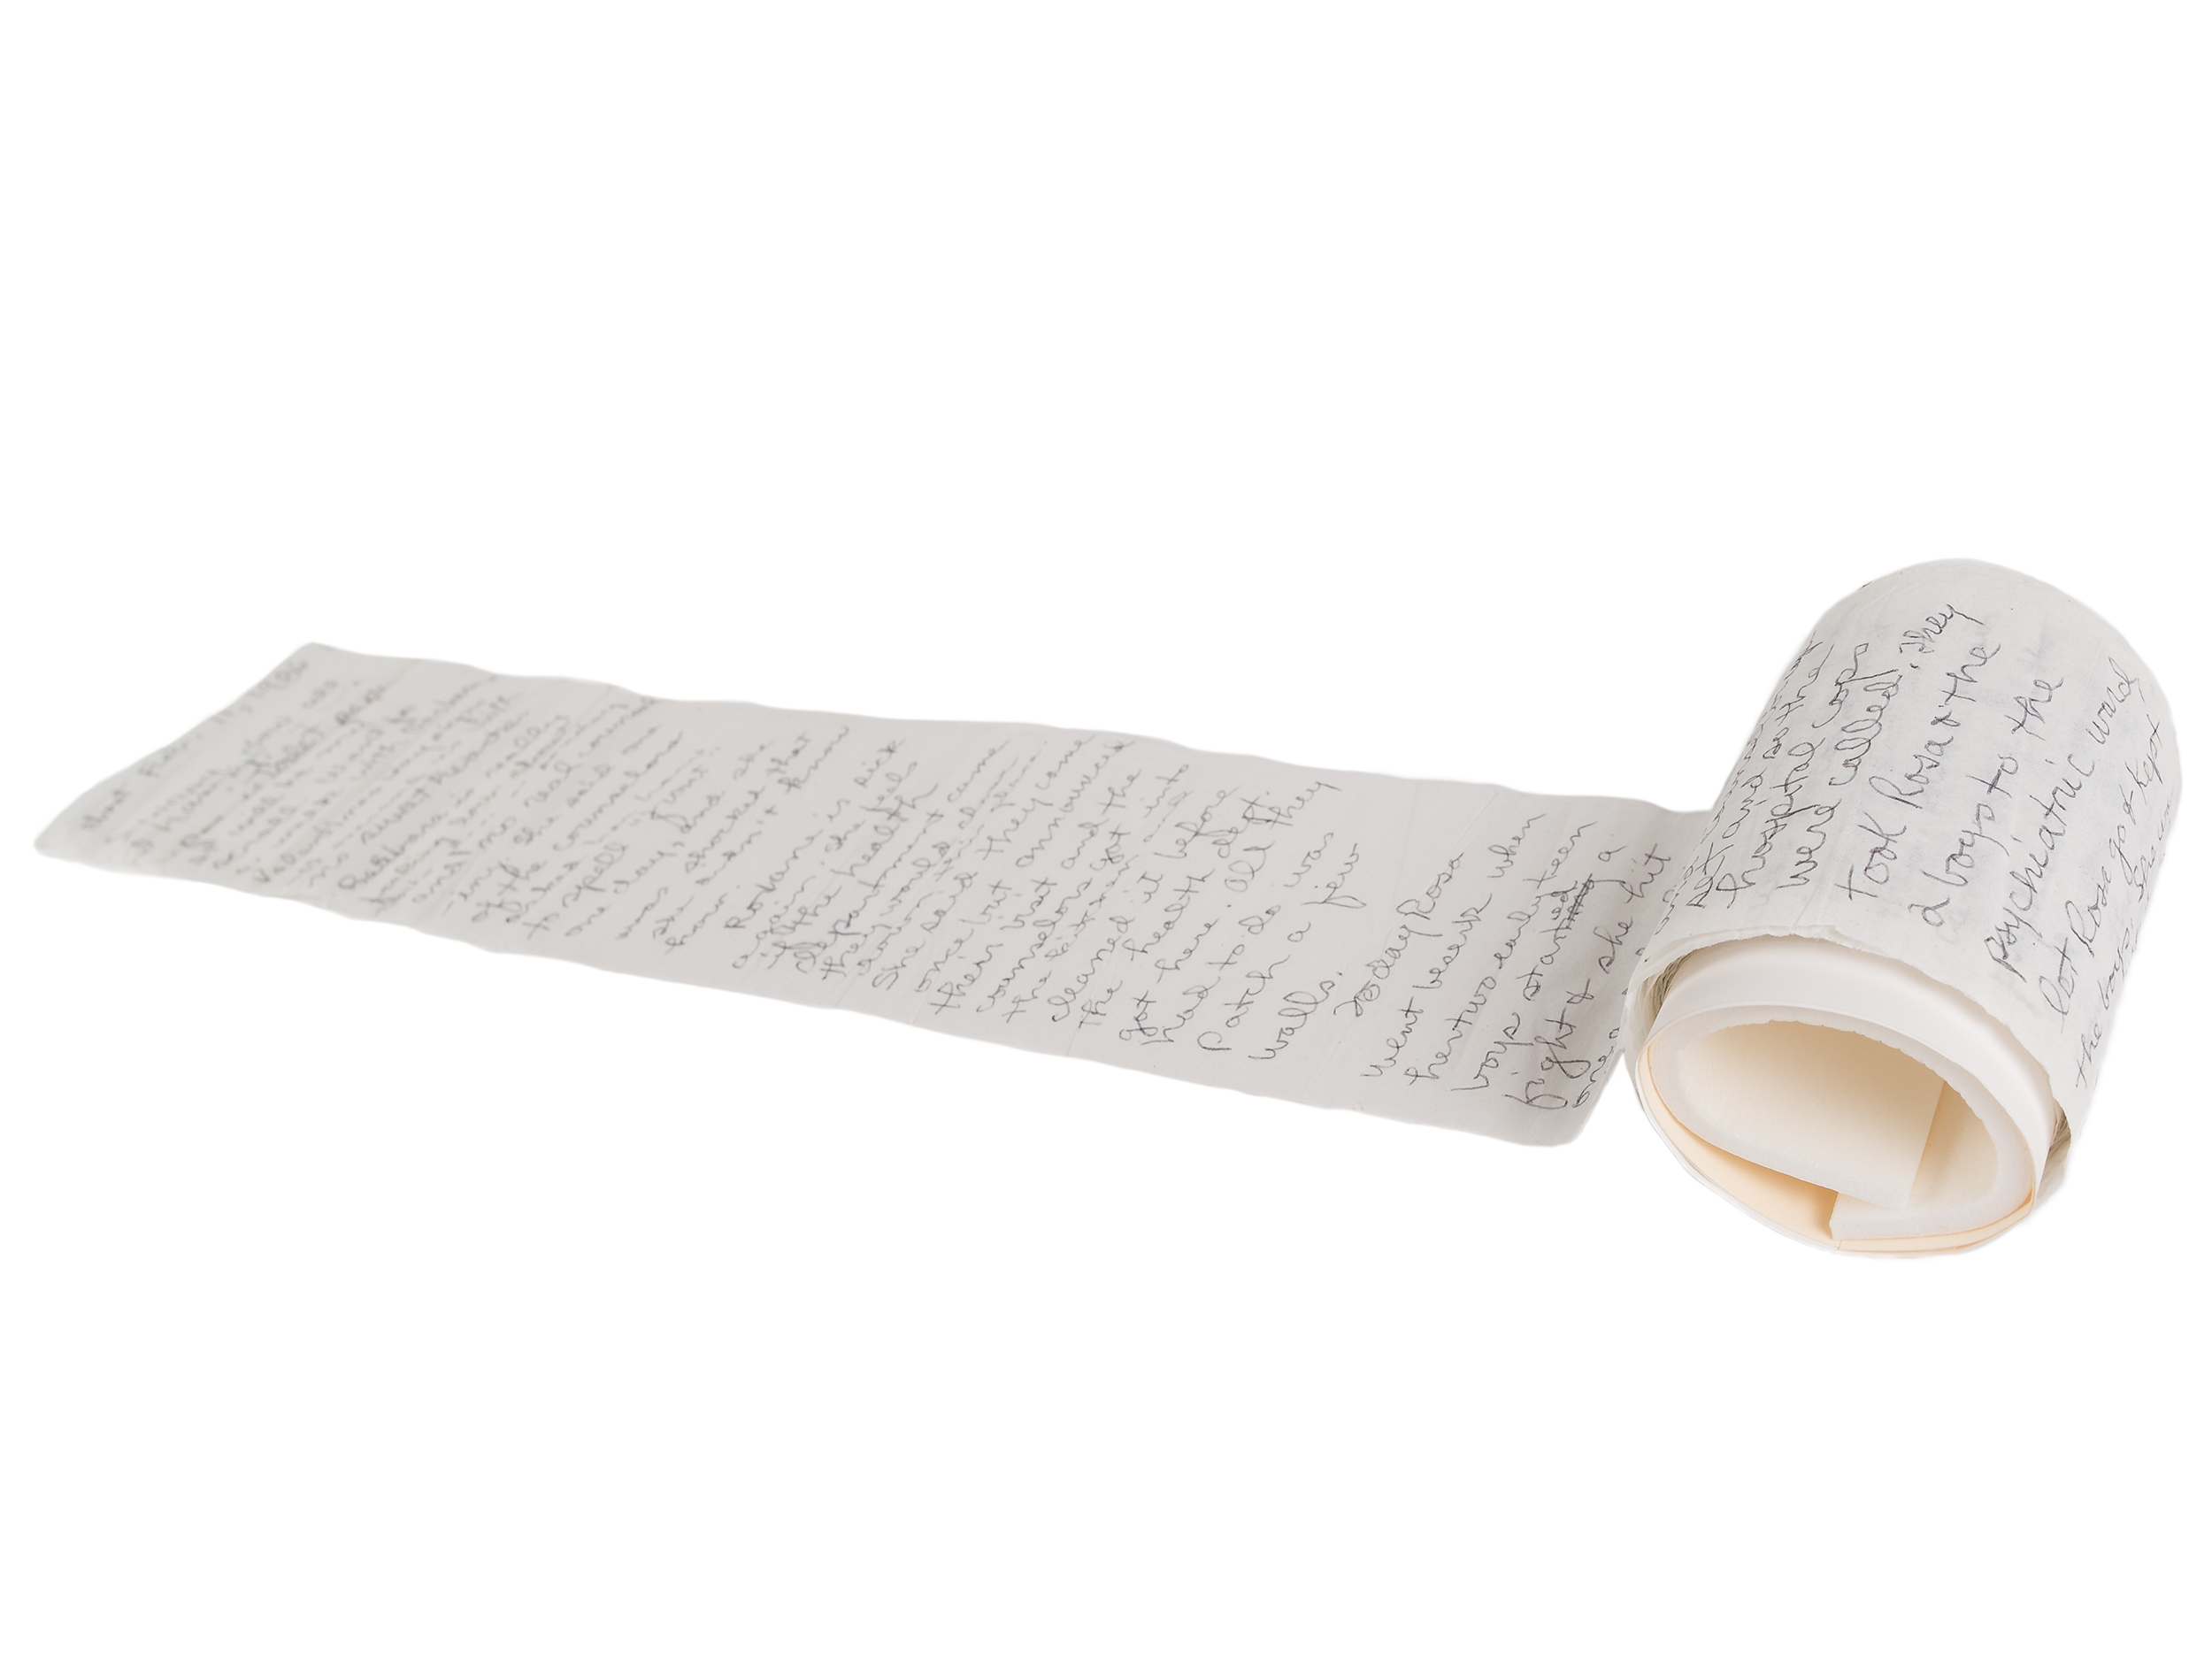 Eleanor Skelton Cash diary on rolls of toilet paper, 1986